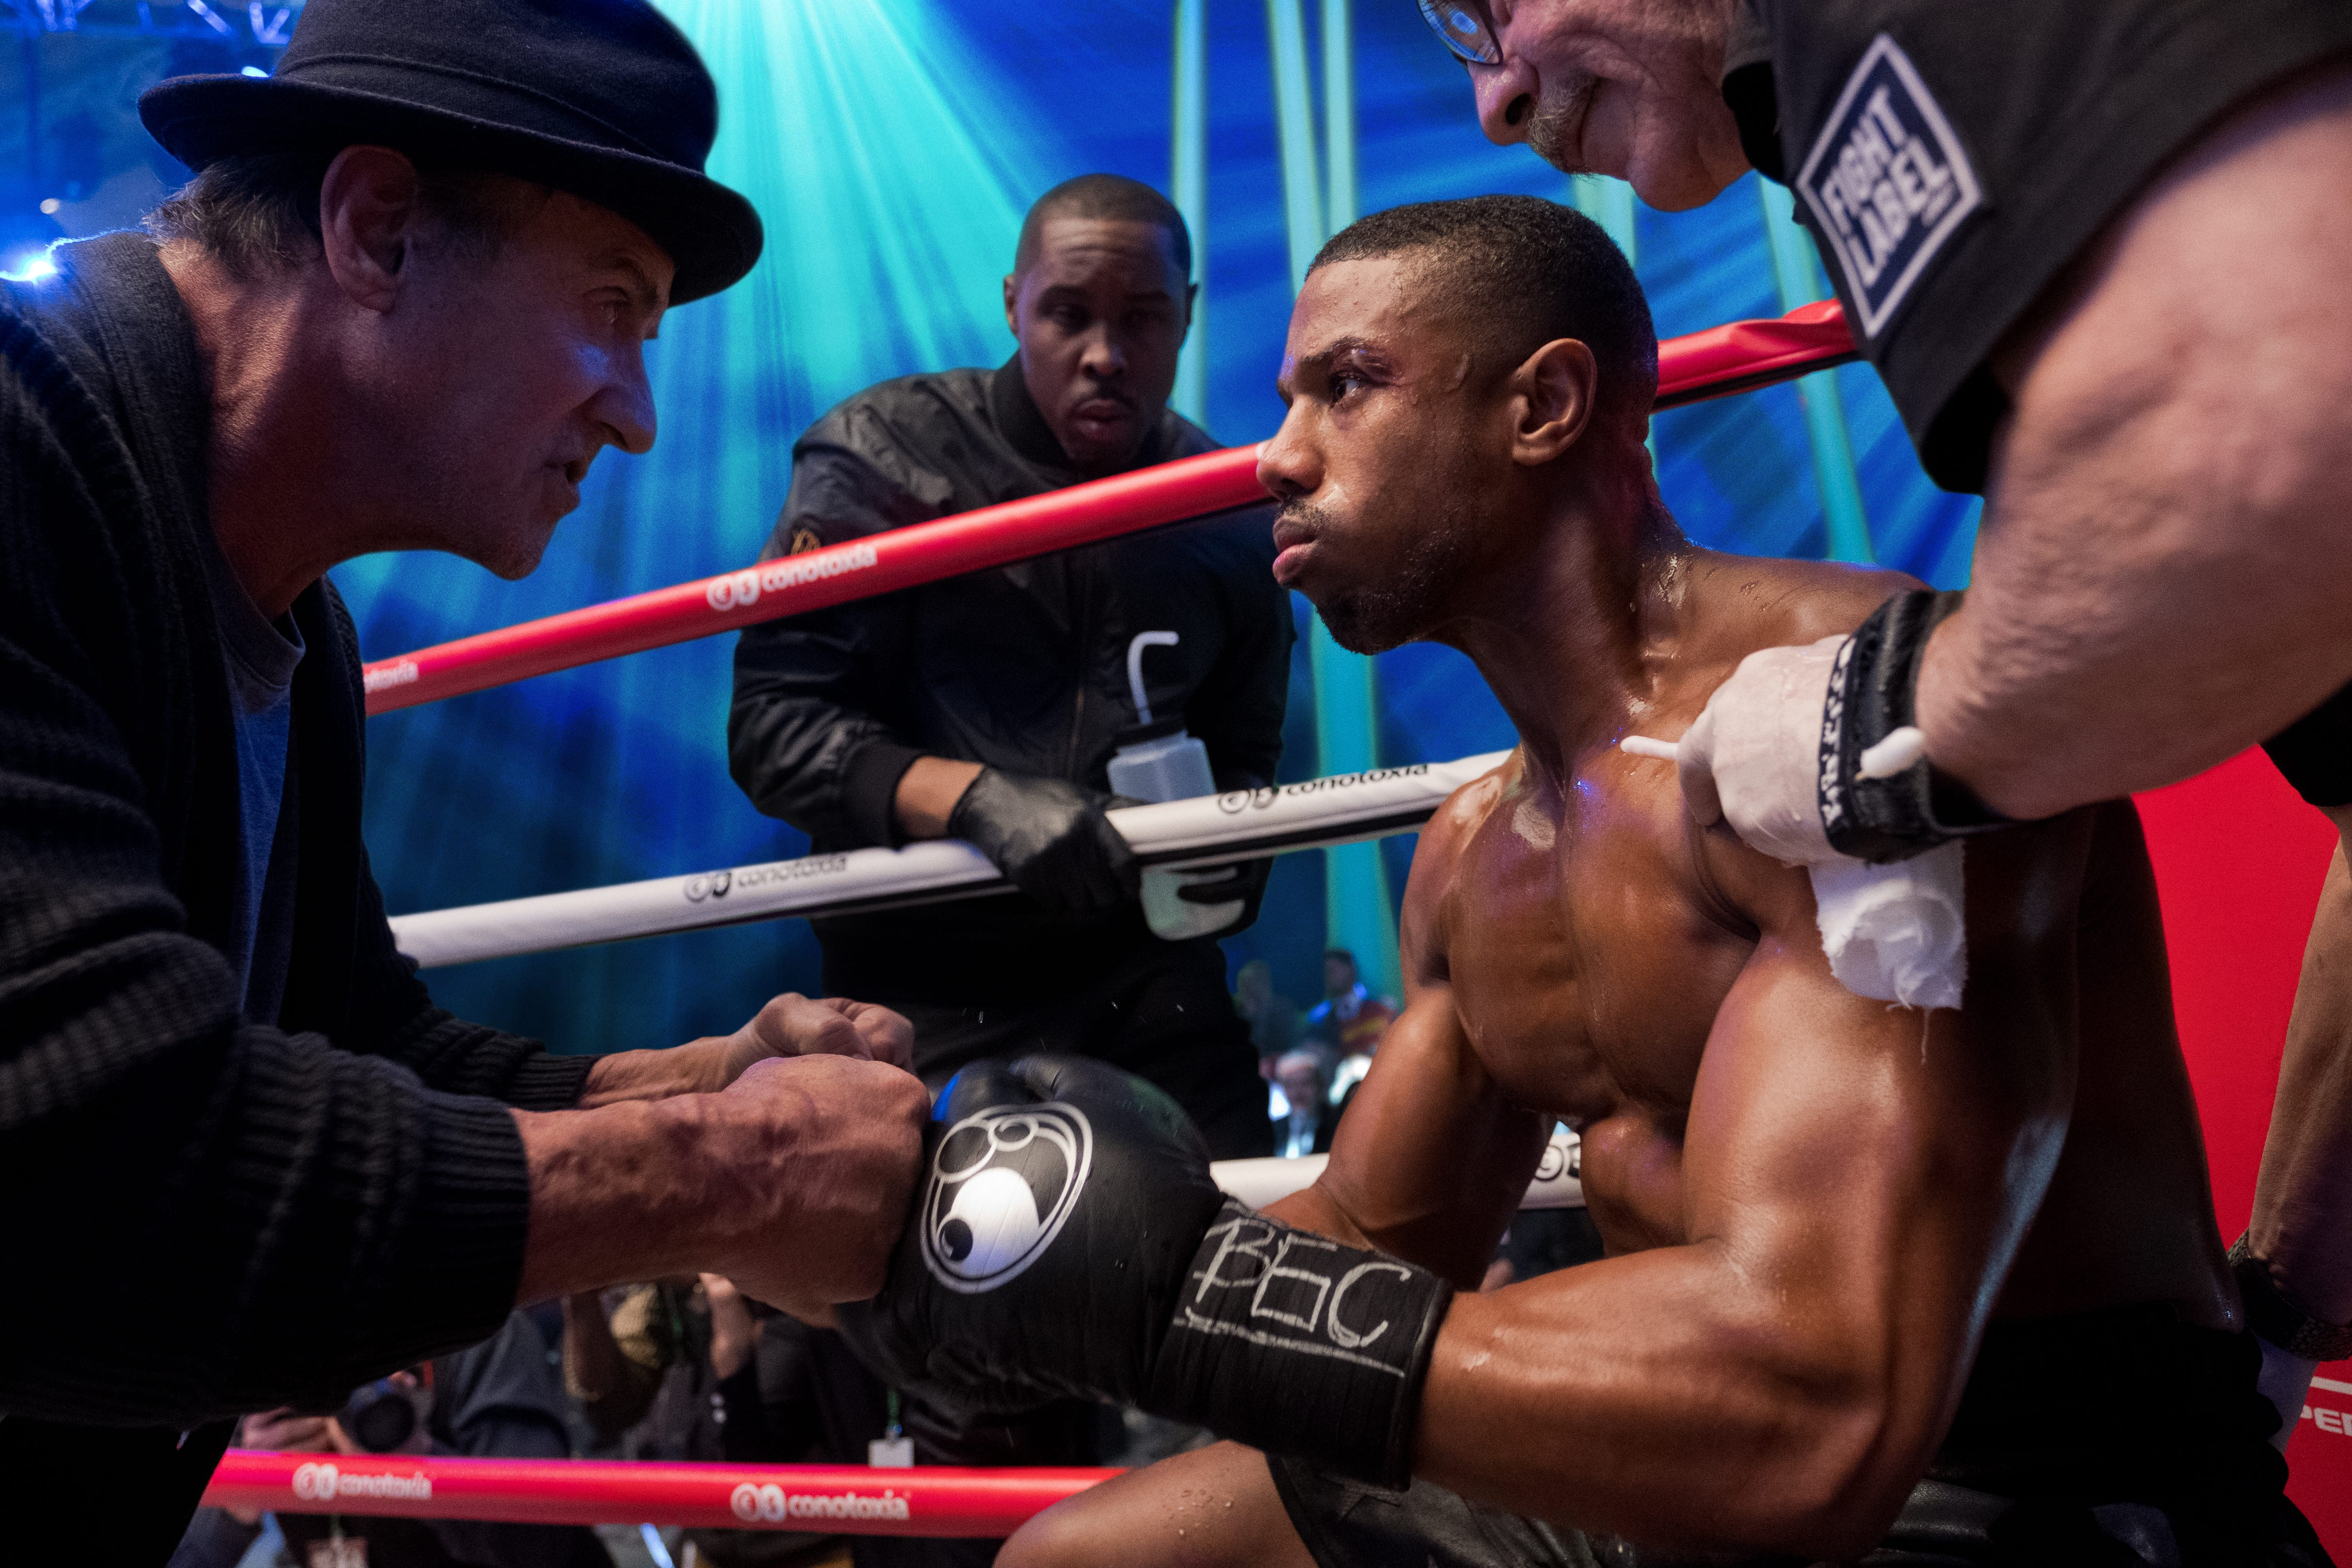 """Adonis Creed (Michael B. Jordan, right) still has Rocky Balboa (Sylvester Stallone, left) in his corner in """"Creed II."""""""